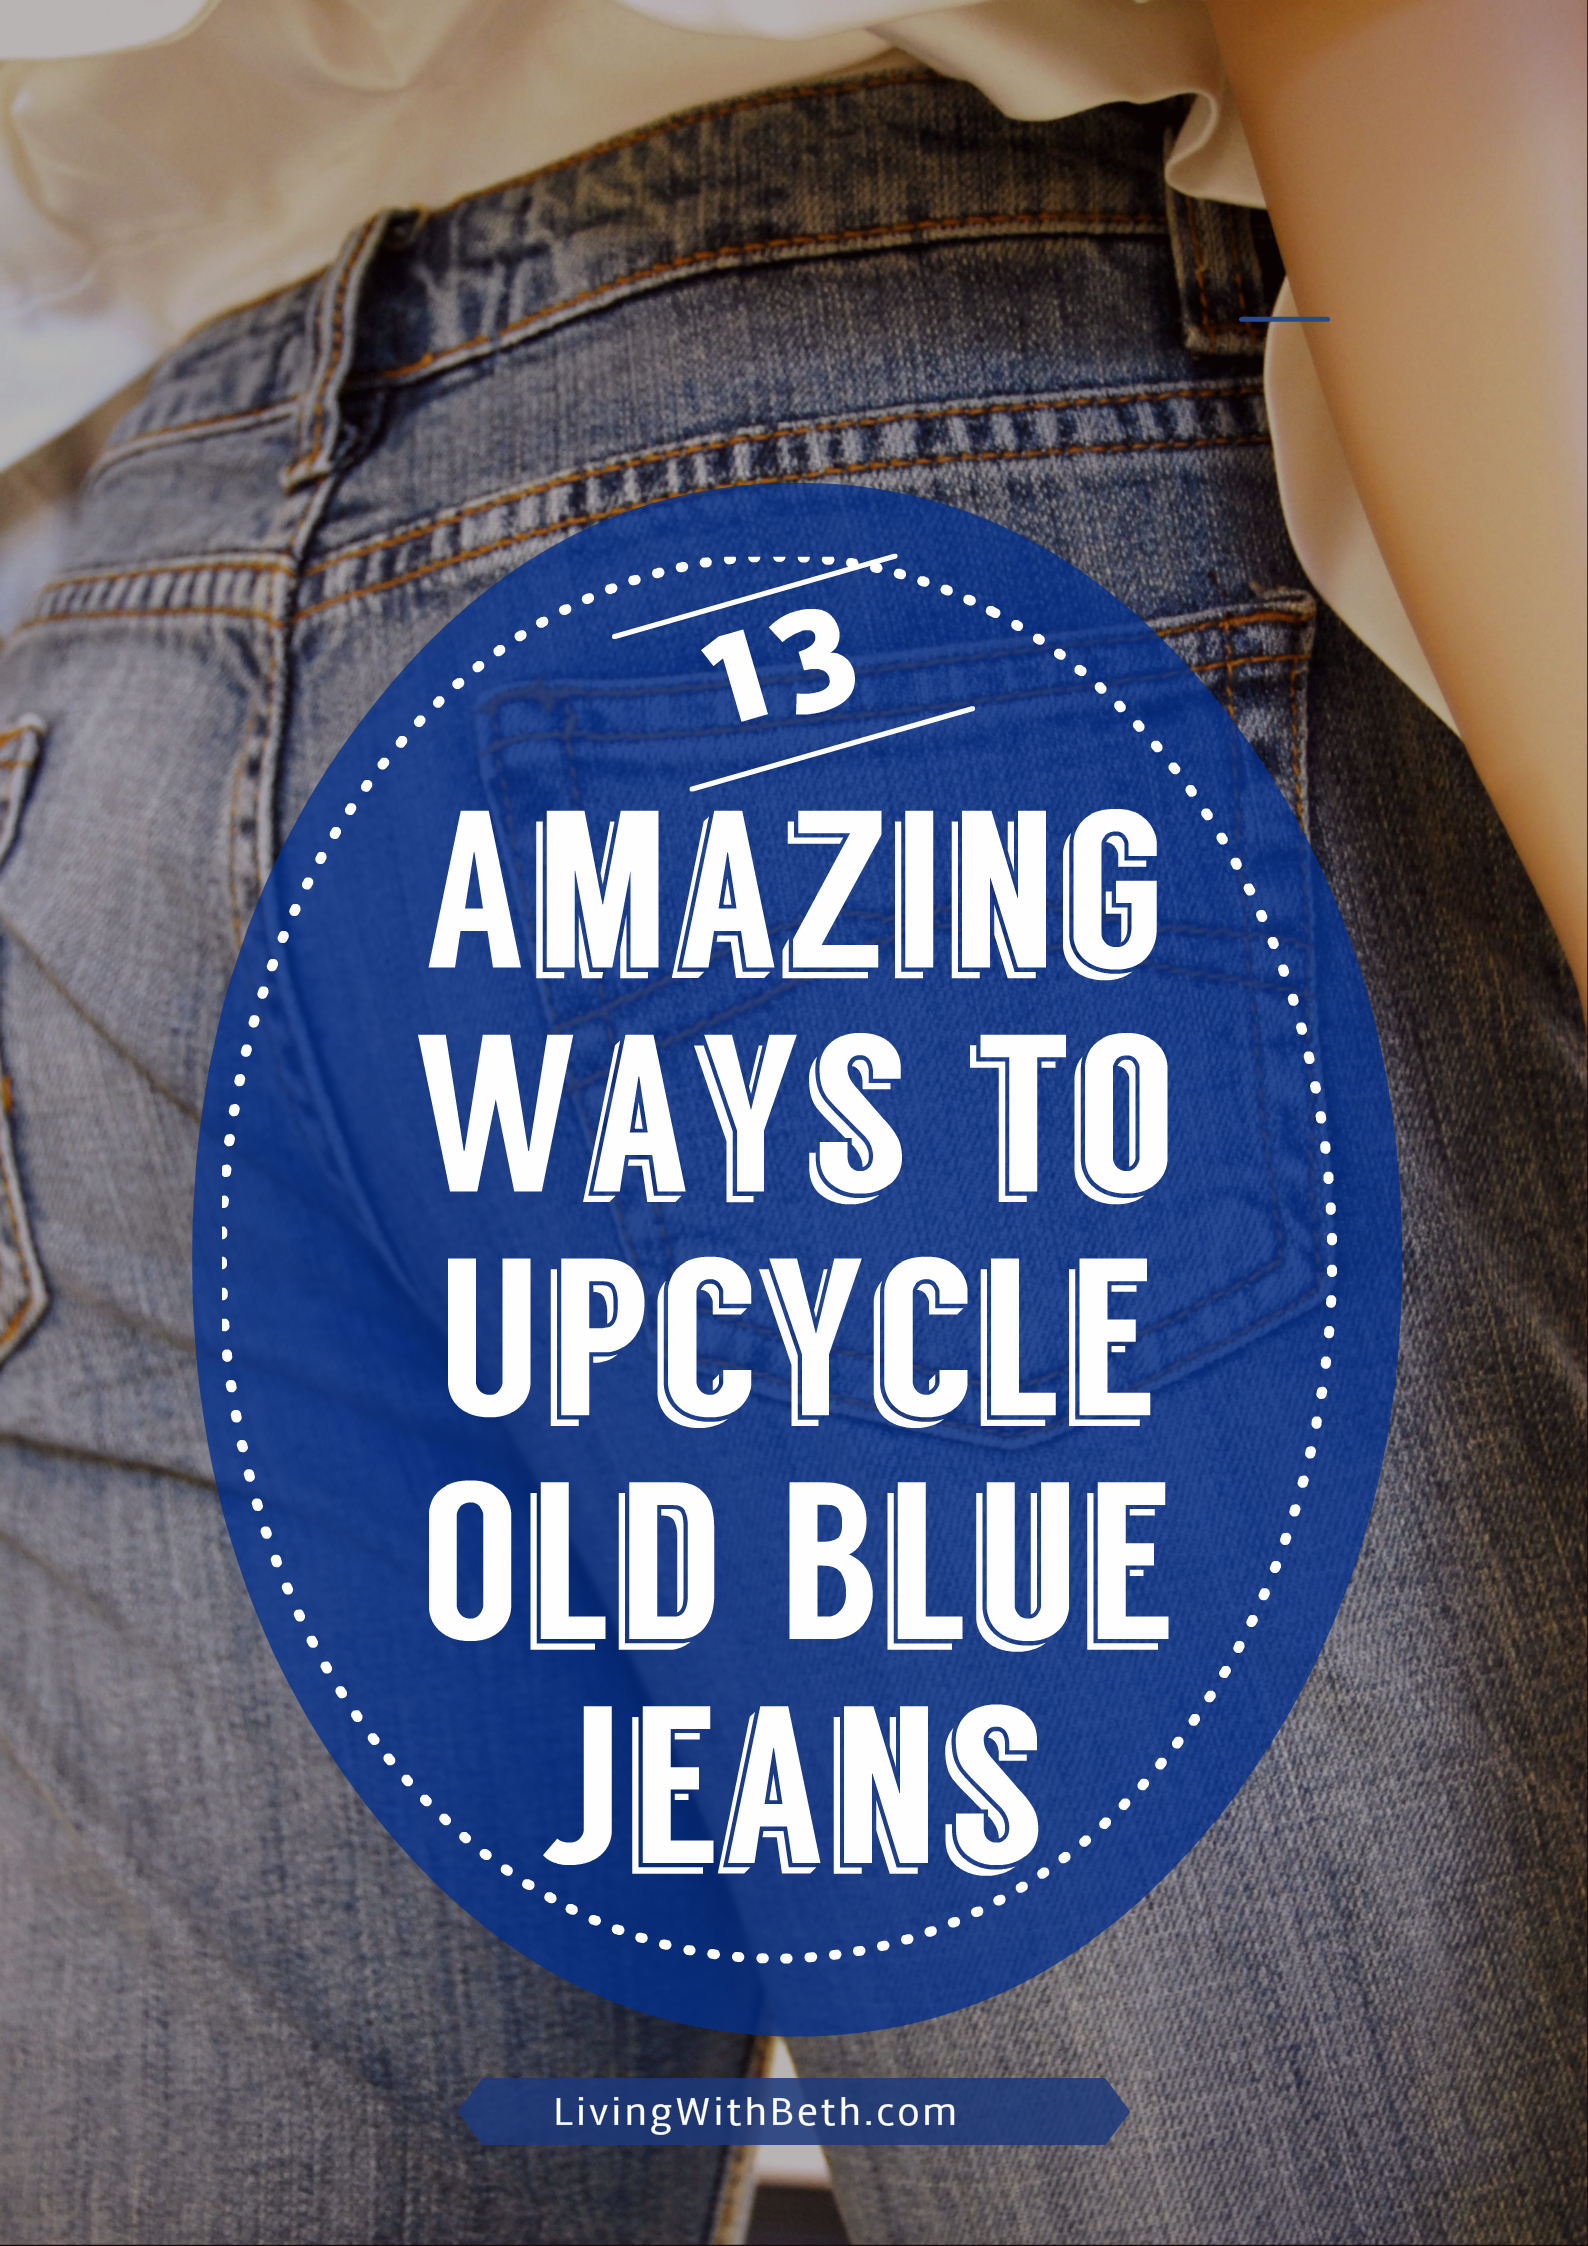 13 Amazing Ways to Upcycle Old Blue Jeans is part of Upcycled Crafts Awesome Blue Jeans - Most of us have old blue jeans or scraps of blue denim around the house  Here are 13 ways to upcycle your old denim to make something new!